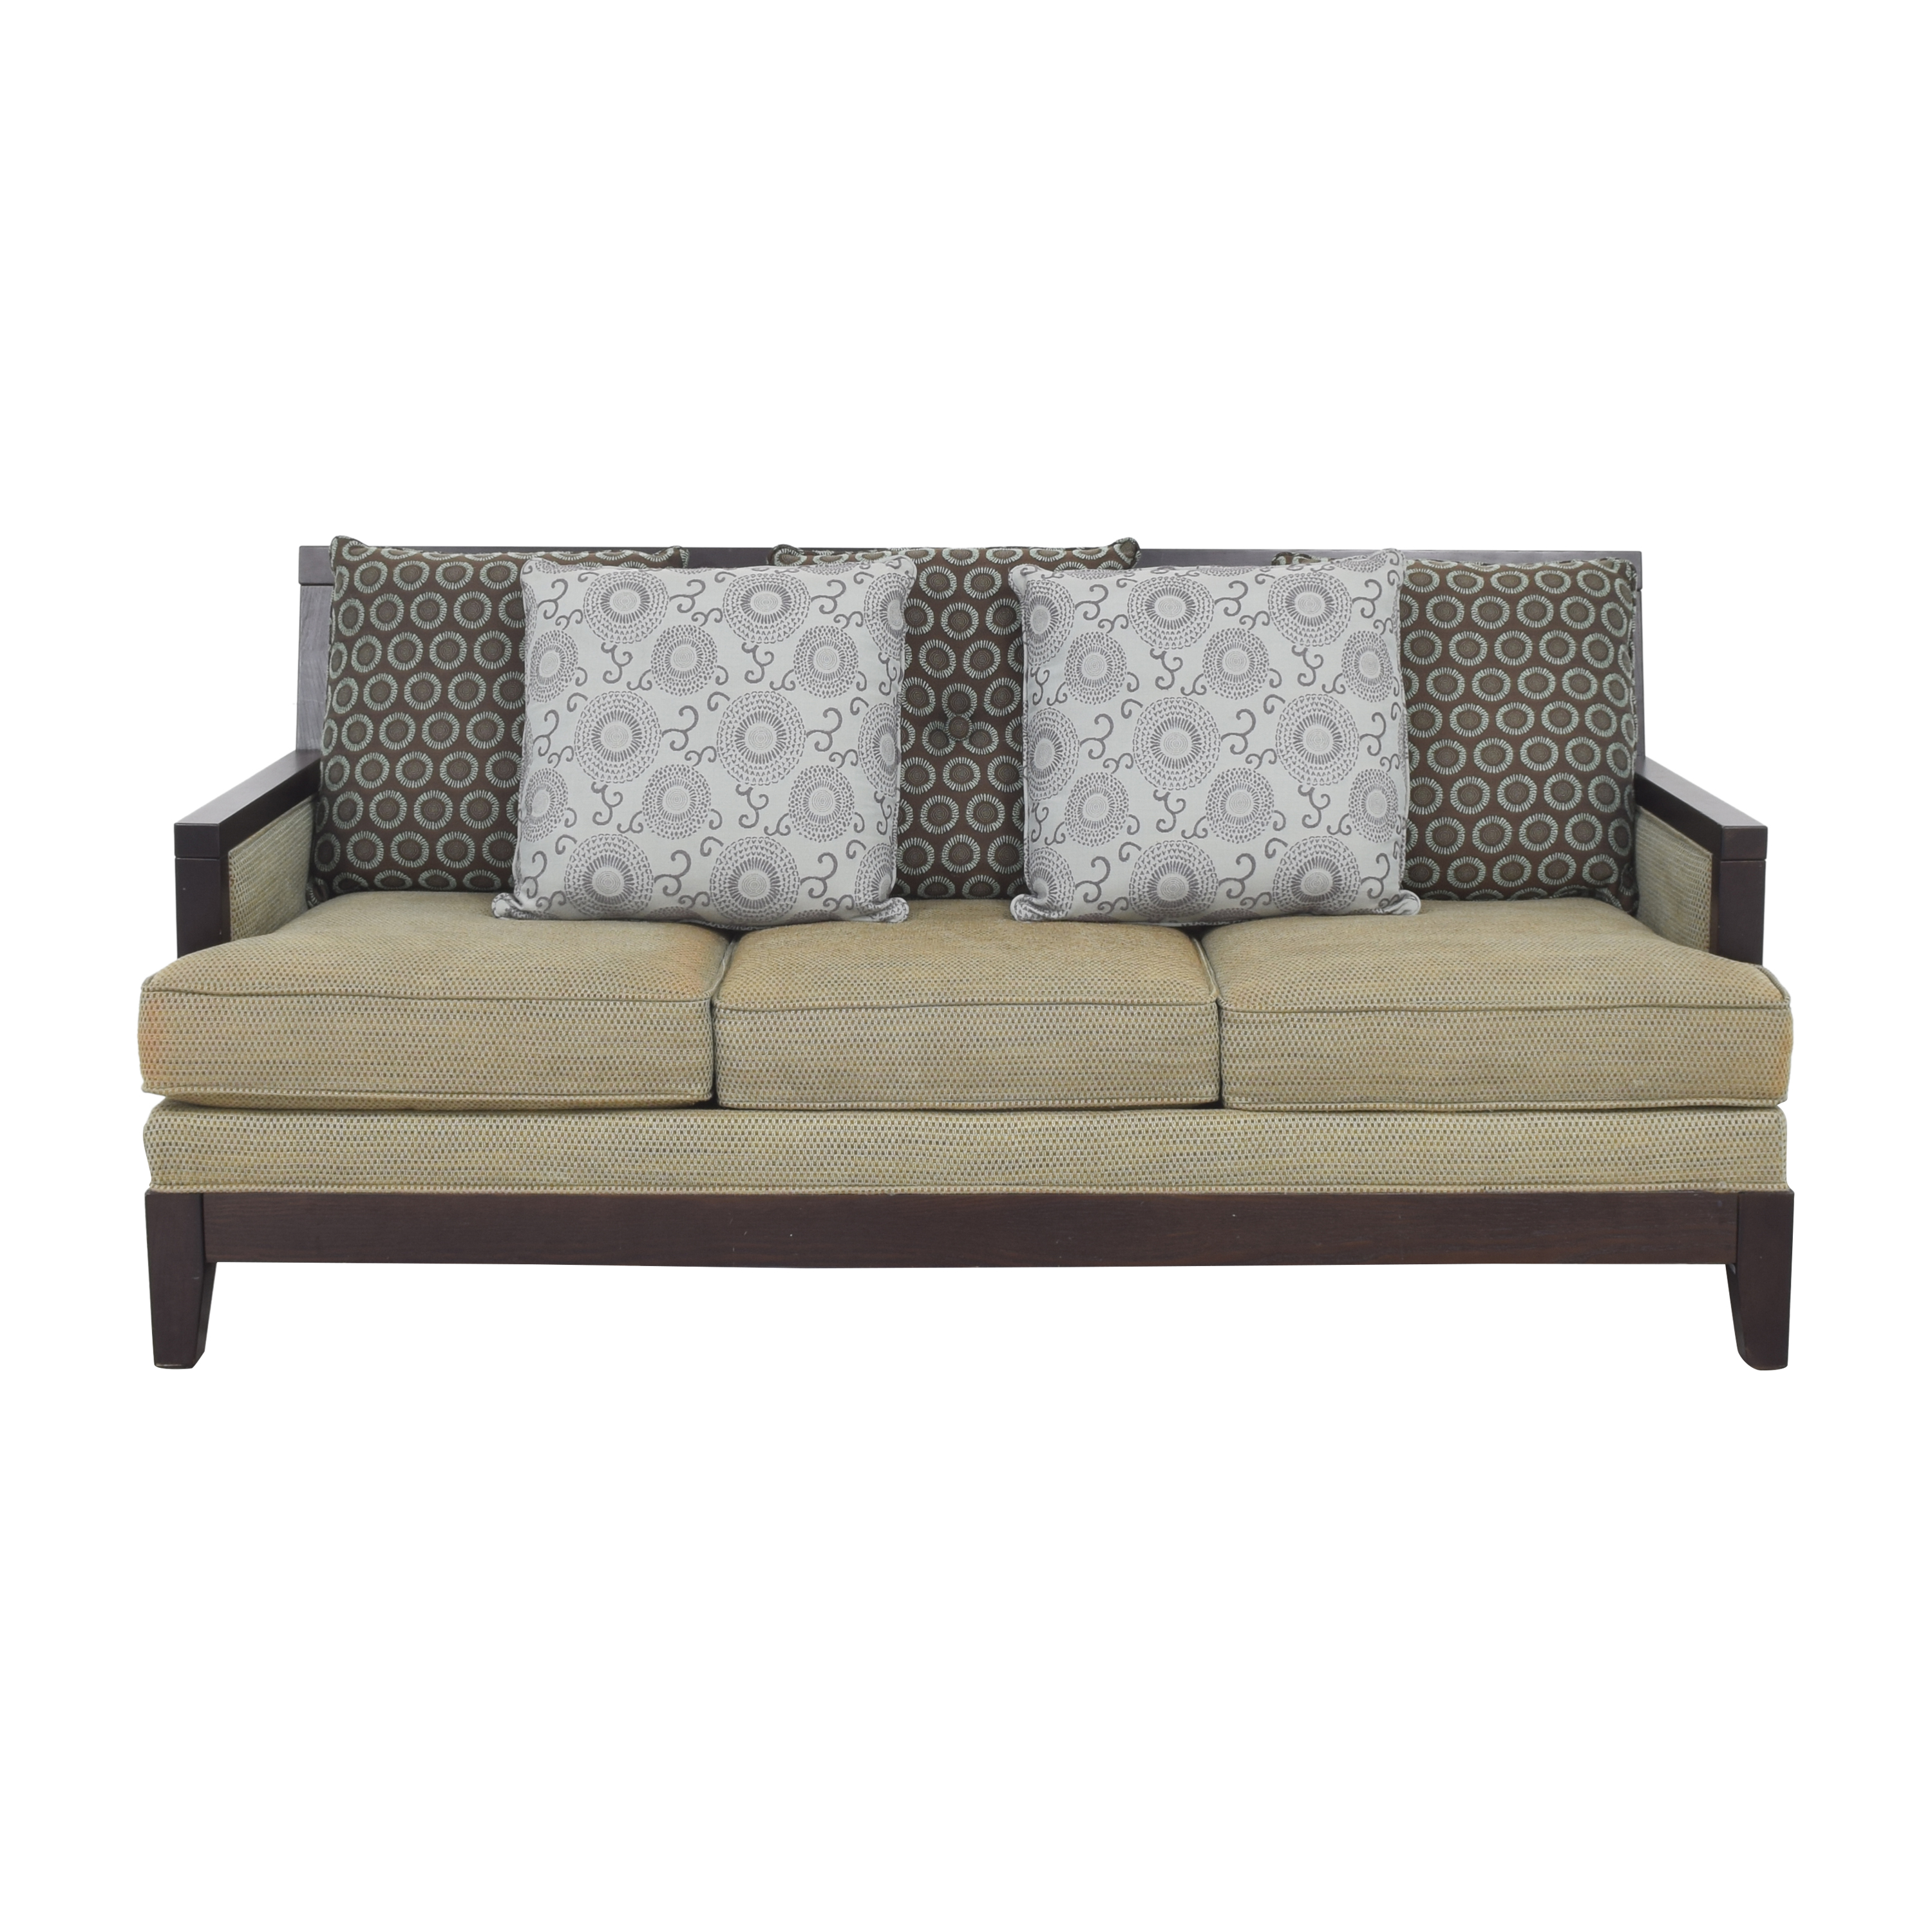 shop Raymour & Flanigan Modern Style Sofa Raymour & Flanigan Classic Sofas